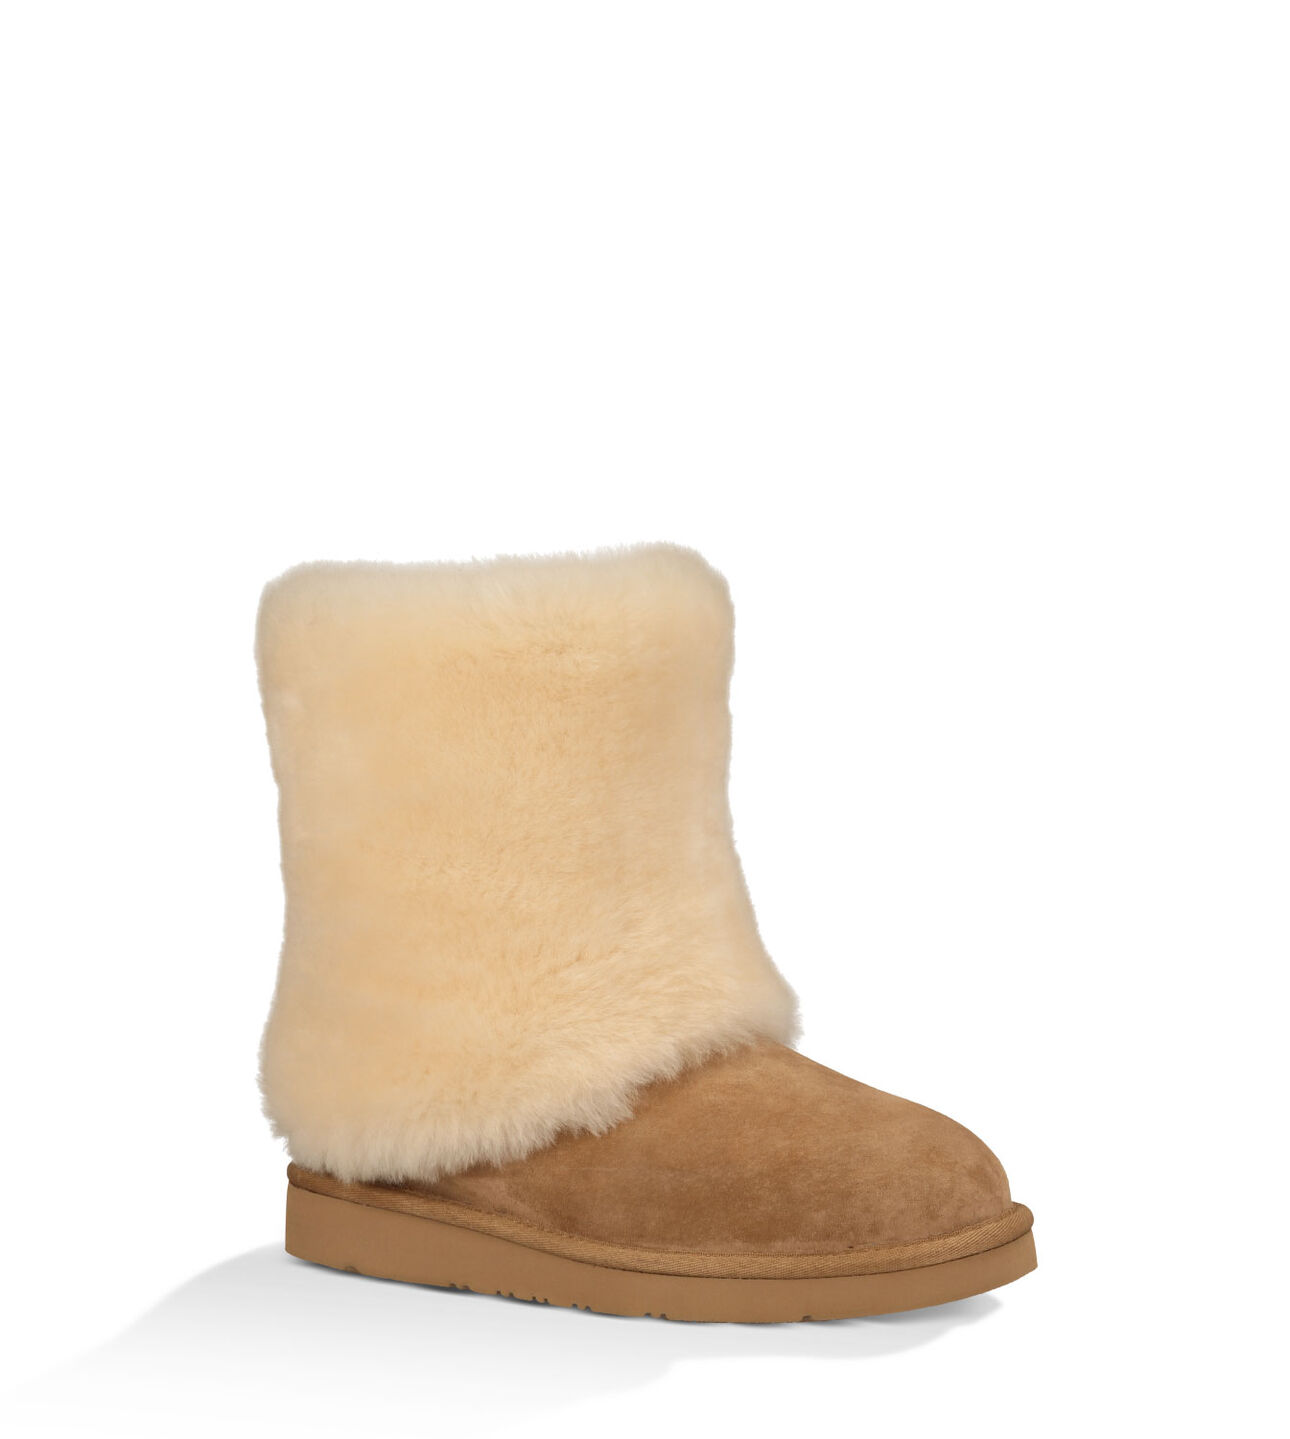 ugg boots next day delivery uk